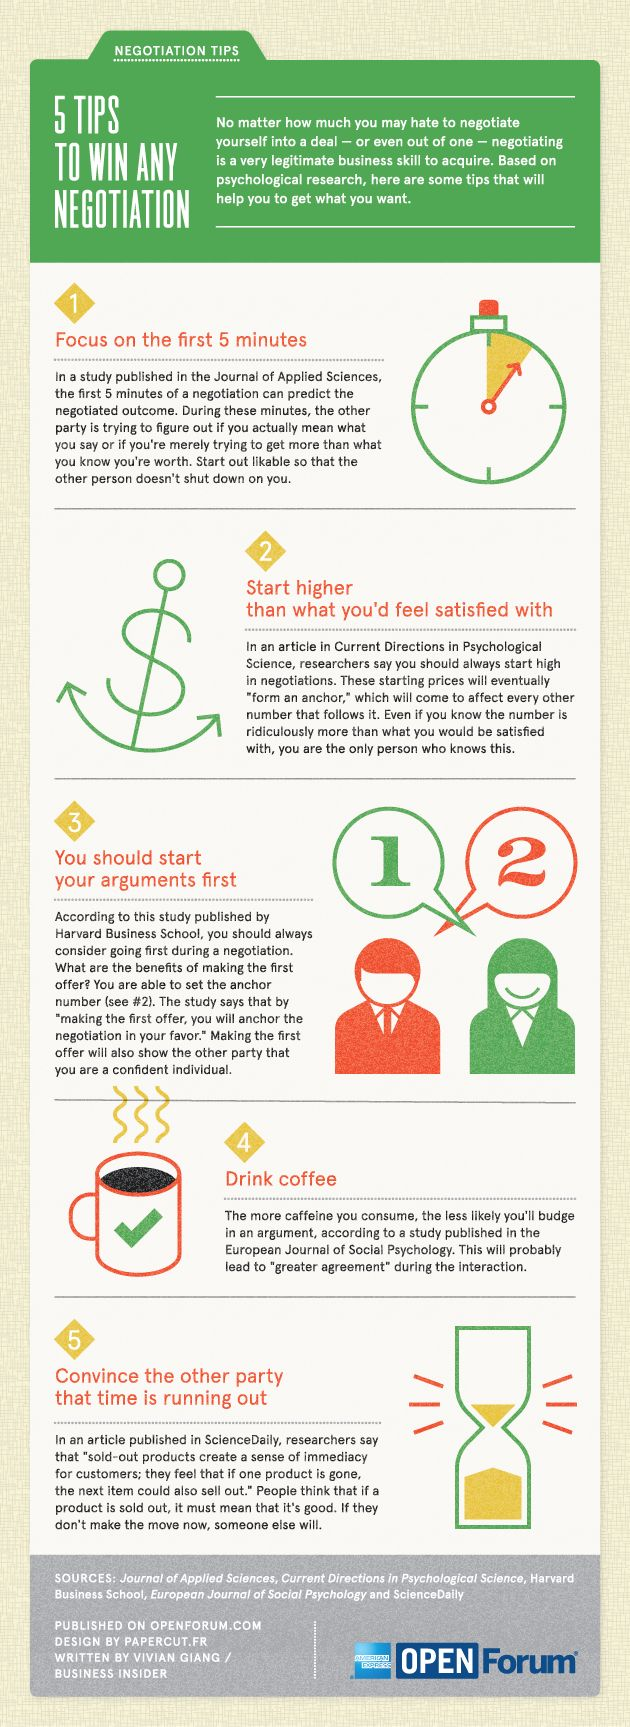 5 tips to win any negociation #infographic Internet Site,  Website, Business Communication, Web Site, Career, Win, Negotiation Infographic, Negotiation Business, Business Infographic